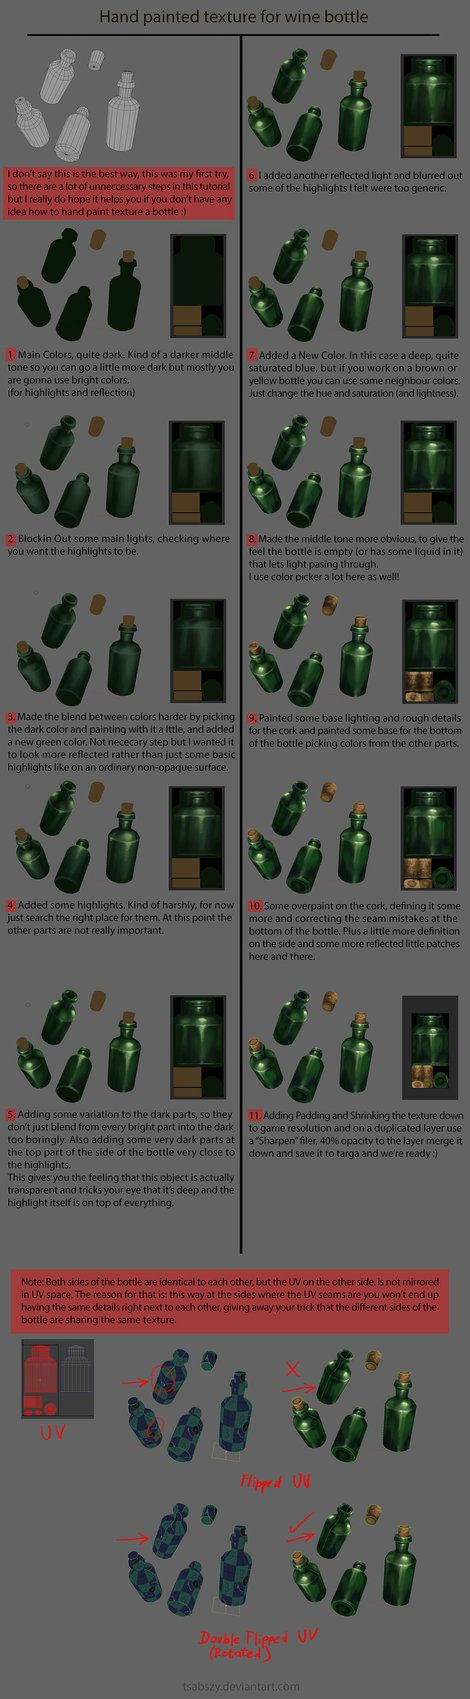 How to paint glass bottles painting drawing resource tool how to tutorial instructions | Create your own roleplaying game material w/ RPG Bard: www.rpgbard.com | Writing inspiration for Dungeons and Dragons DND D&D Pathfinder PFRPG Warhammer 40k Star Wars Shadowrun Call of Cthulhu Lord of the Rings LoTR + d20 fantasy science fiction scifi horror design | Not Trusty Sword art: click artwork for source